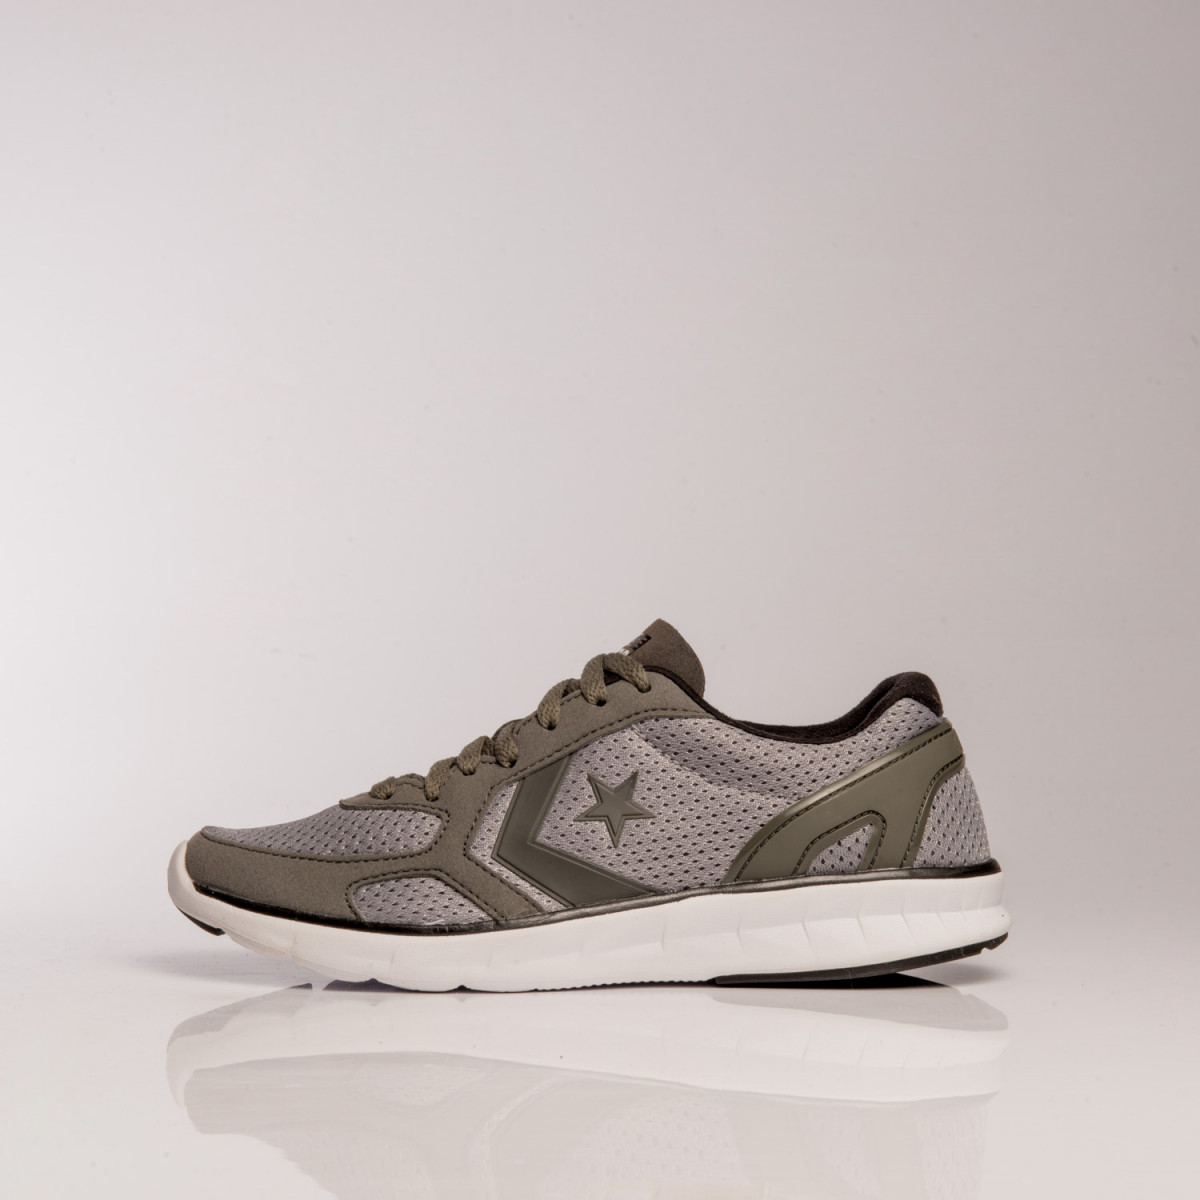 ZAPATILLAS CONVERSE AUCKLAND RACER RE-MIX OX